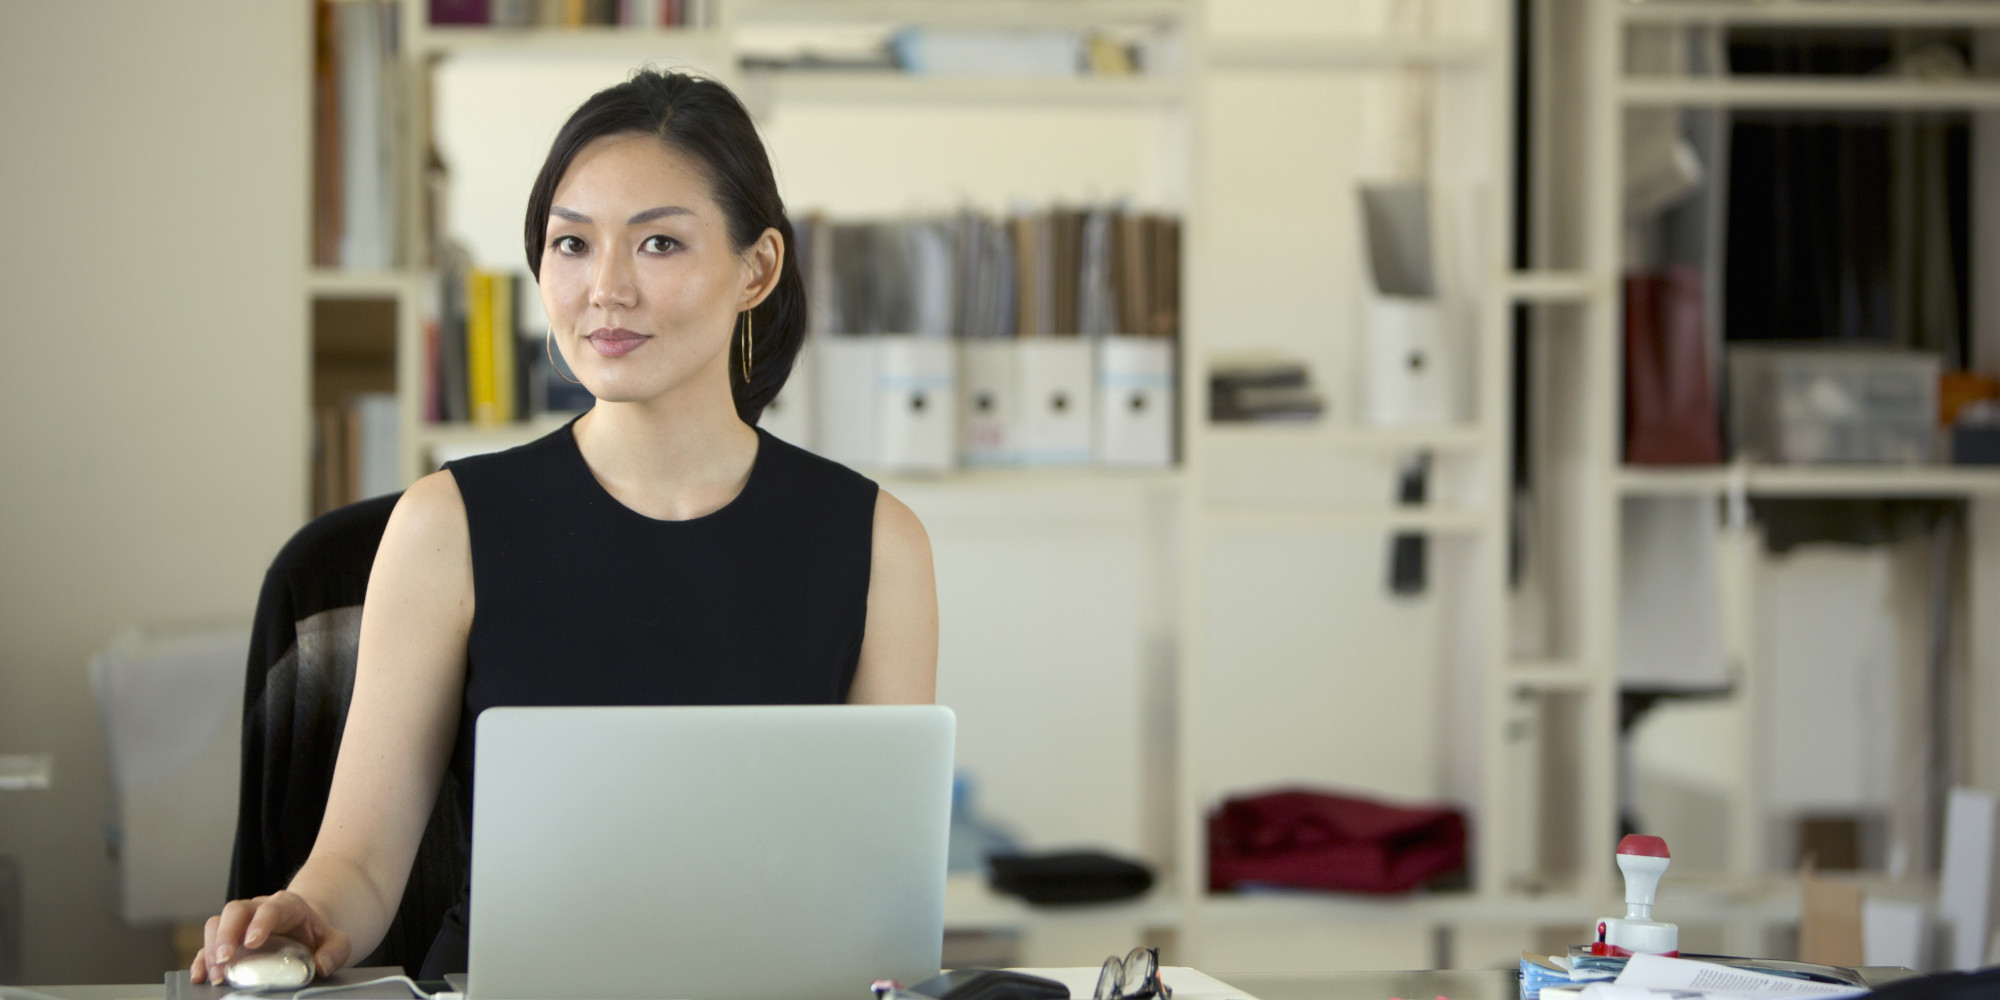 women enterpreneurs Nothing could be truer for the women entrepreneurs of today who are chartering unknown territories unabashedly and fearlessly be it in ecommerce, education, investing, travel, fashion, retail, fitness, hiring, and anything.